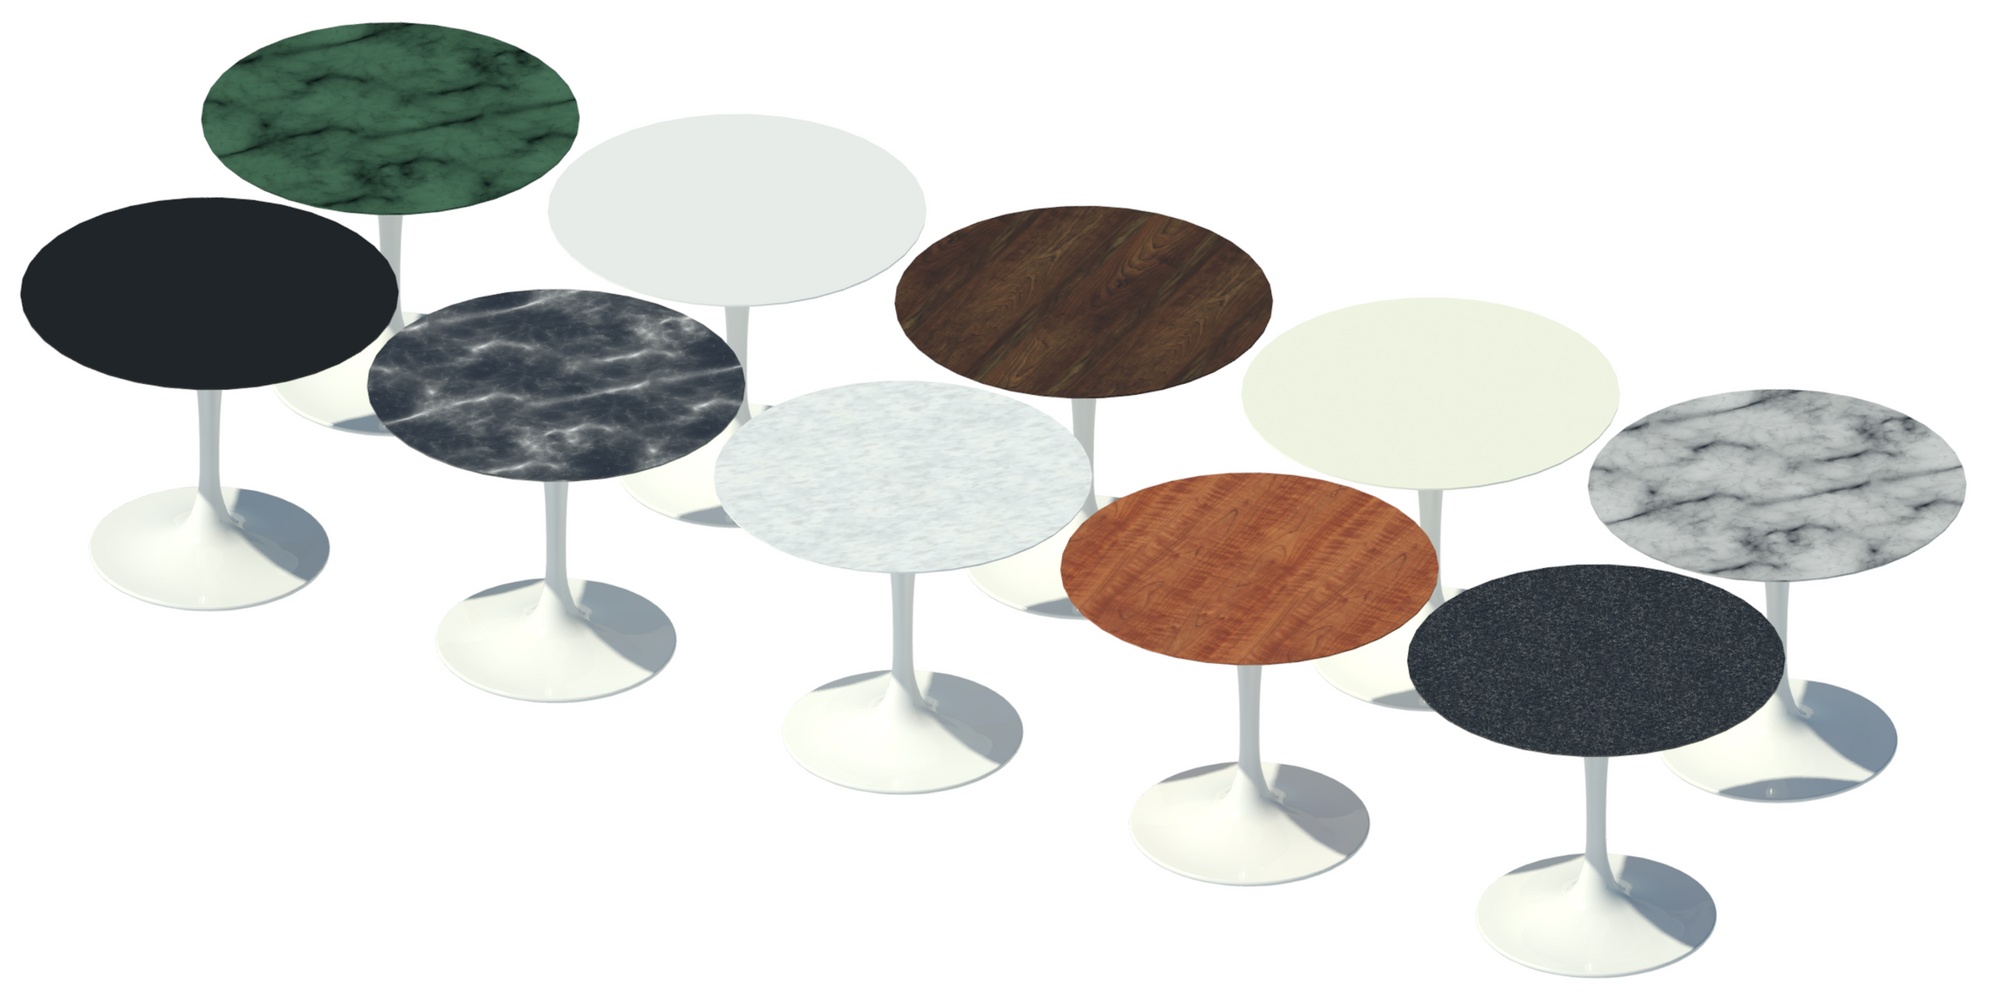 Revit raytrace showing ten table top materials.